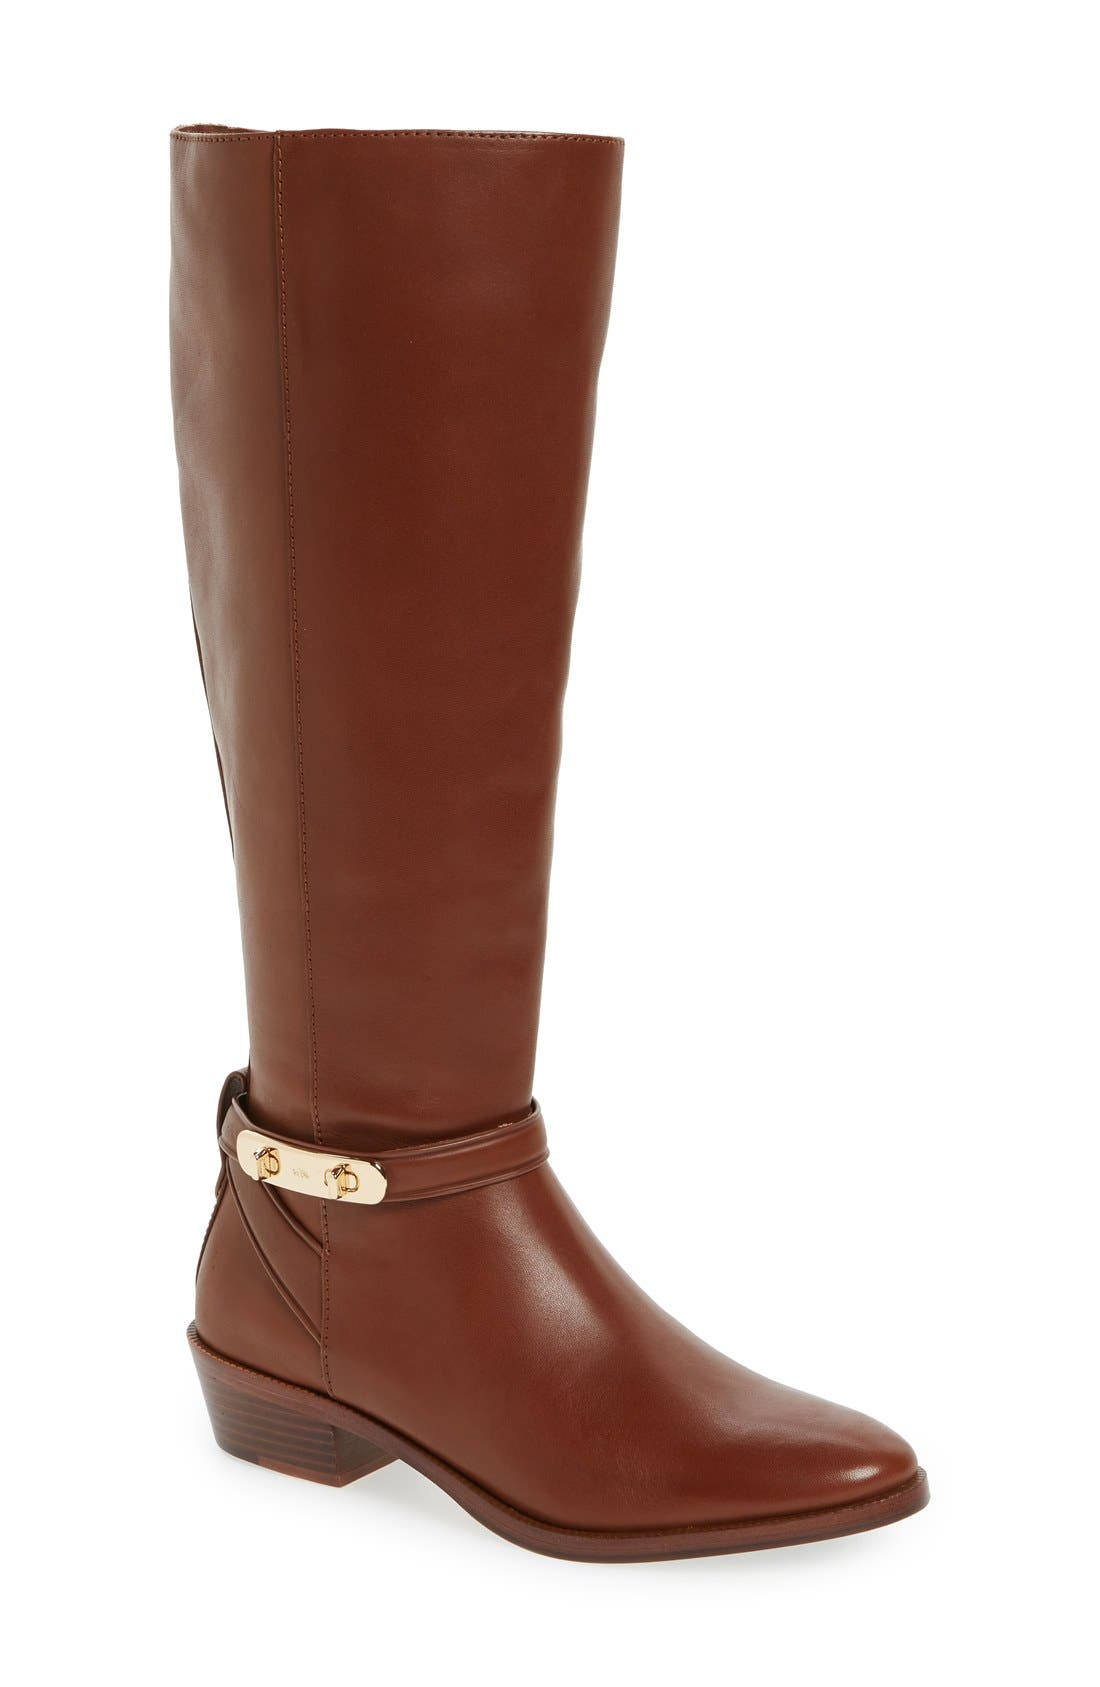 Alternate Image 1 Selected - COACH 'Caroline' Tall Boot (Women)